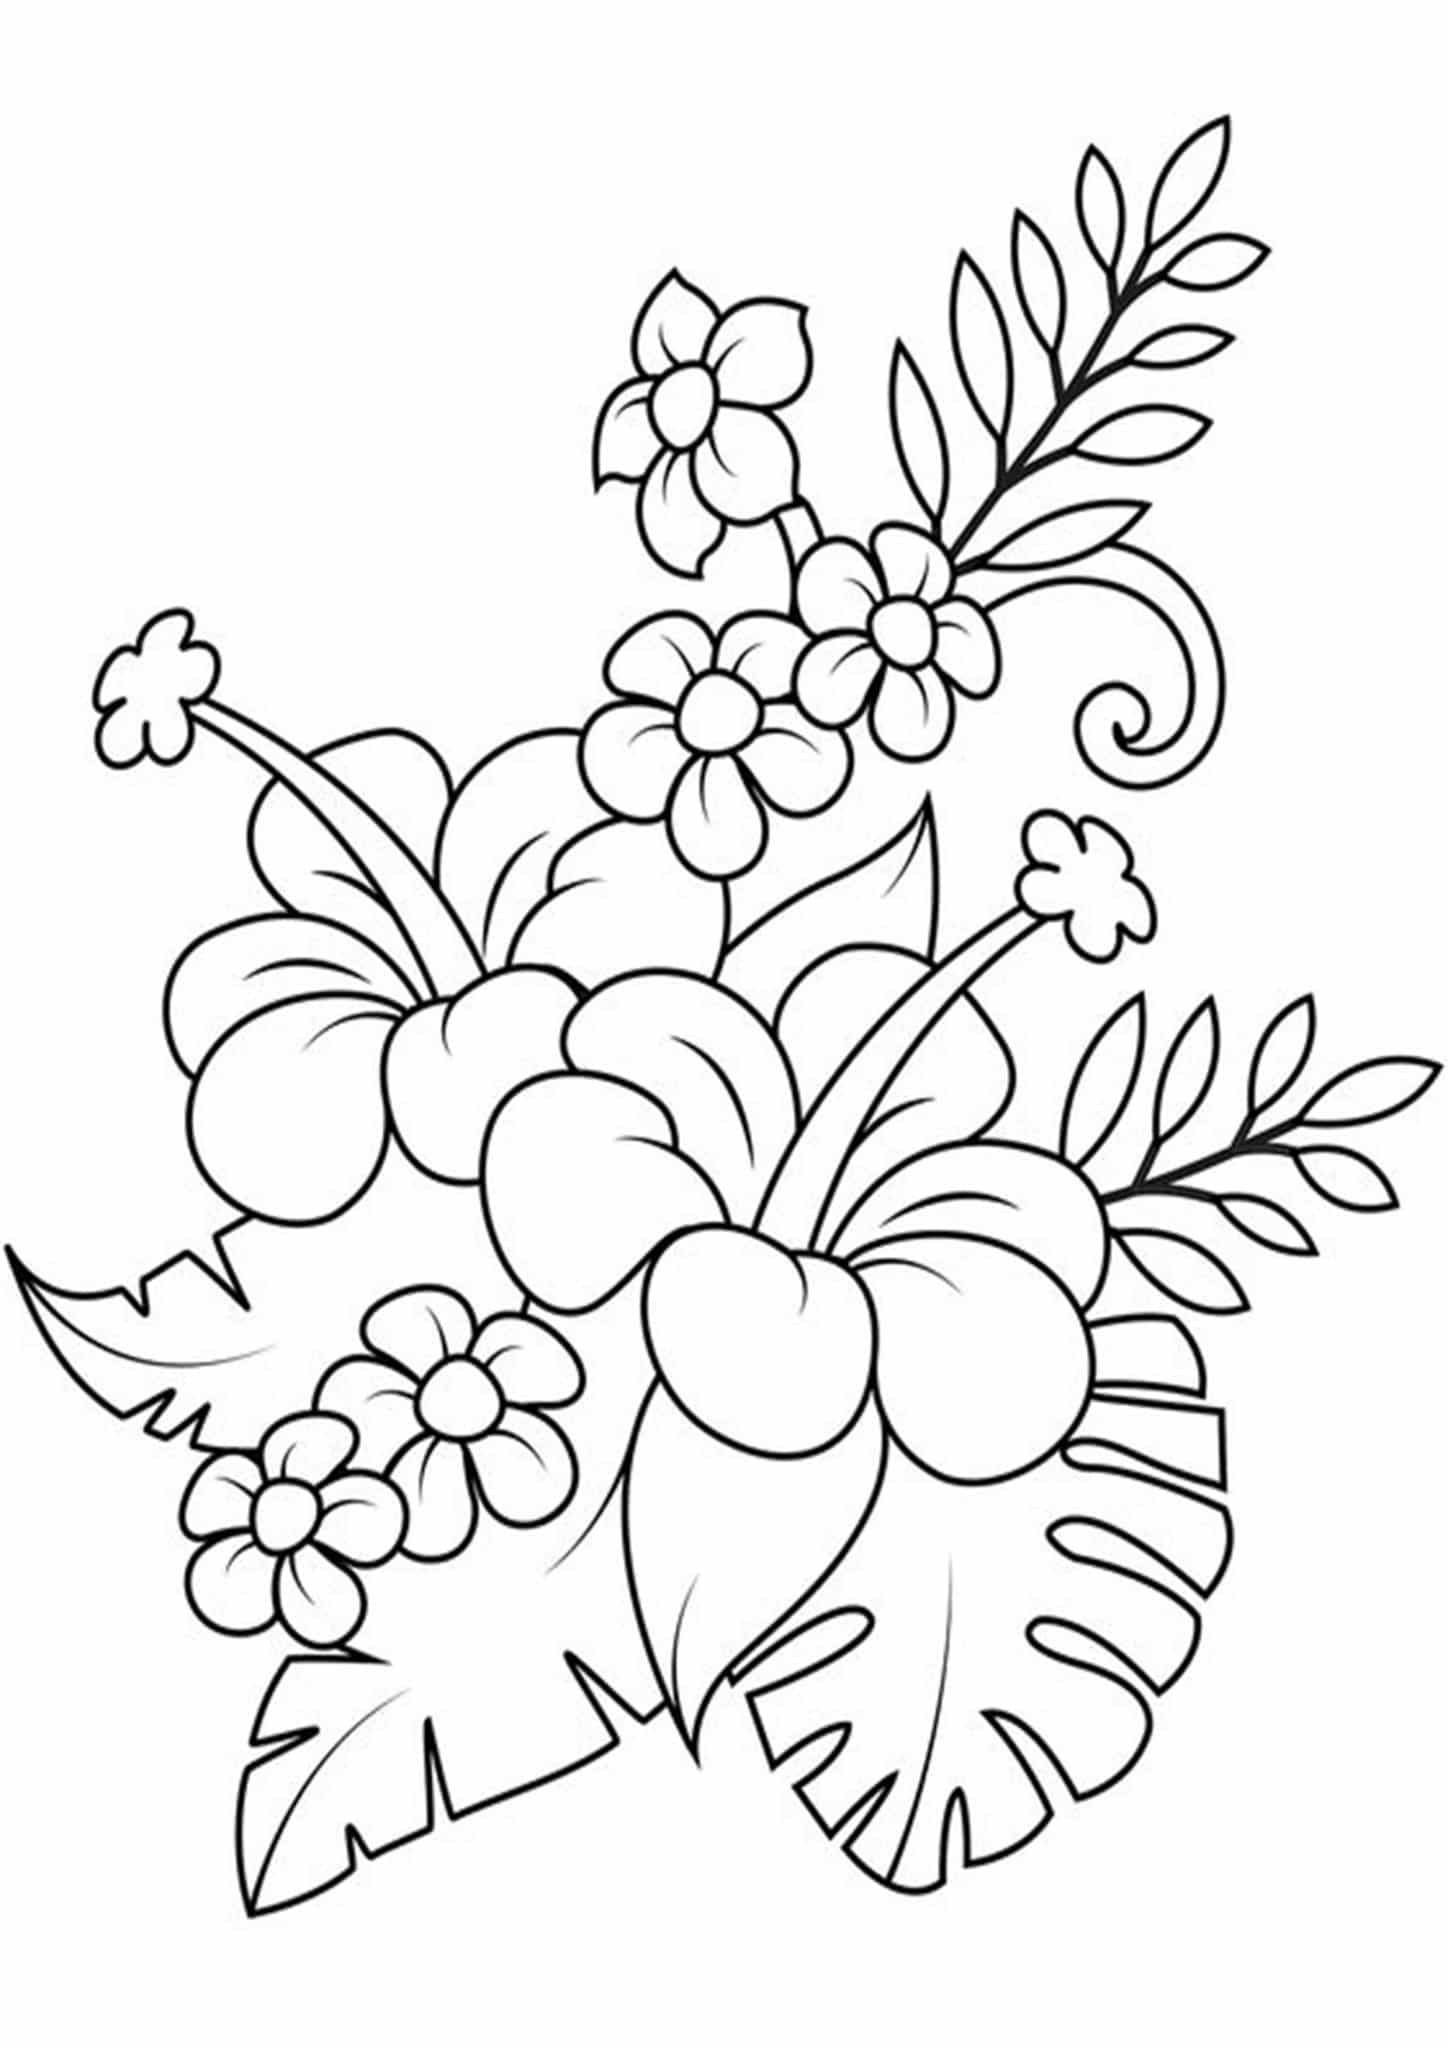 coloring picture of flower free printable flower coloring pages for kids best of flower picture coloring